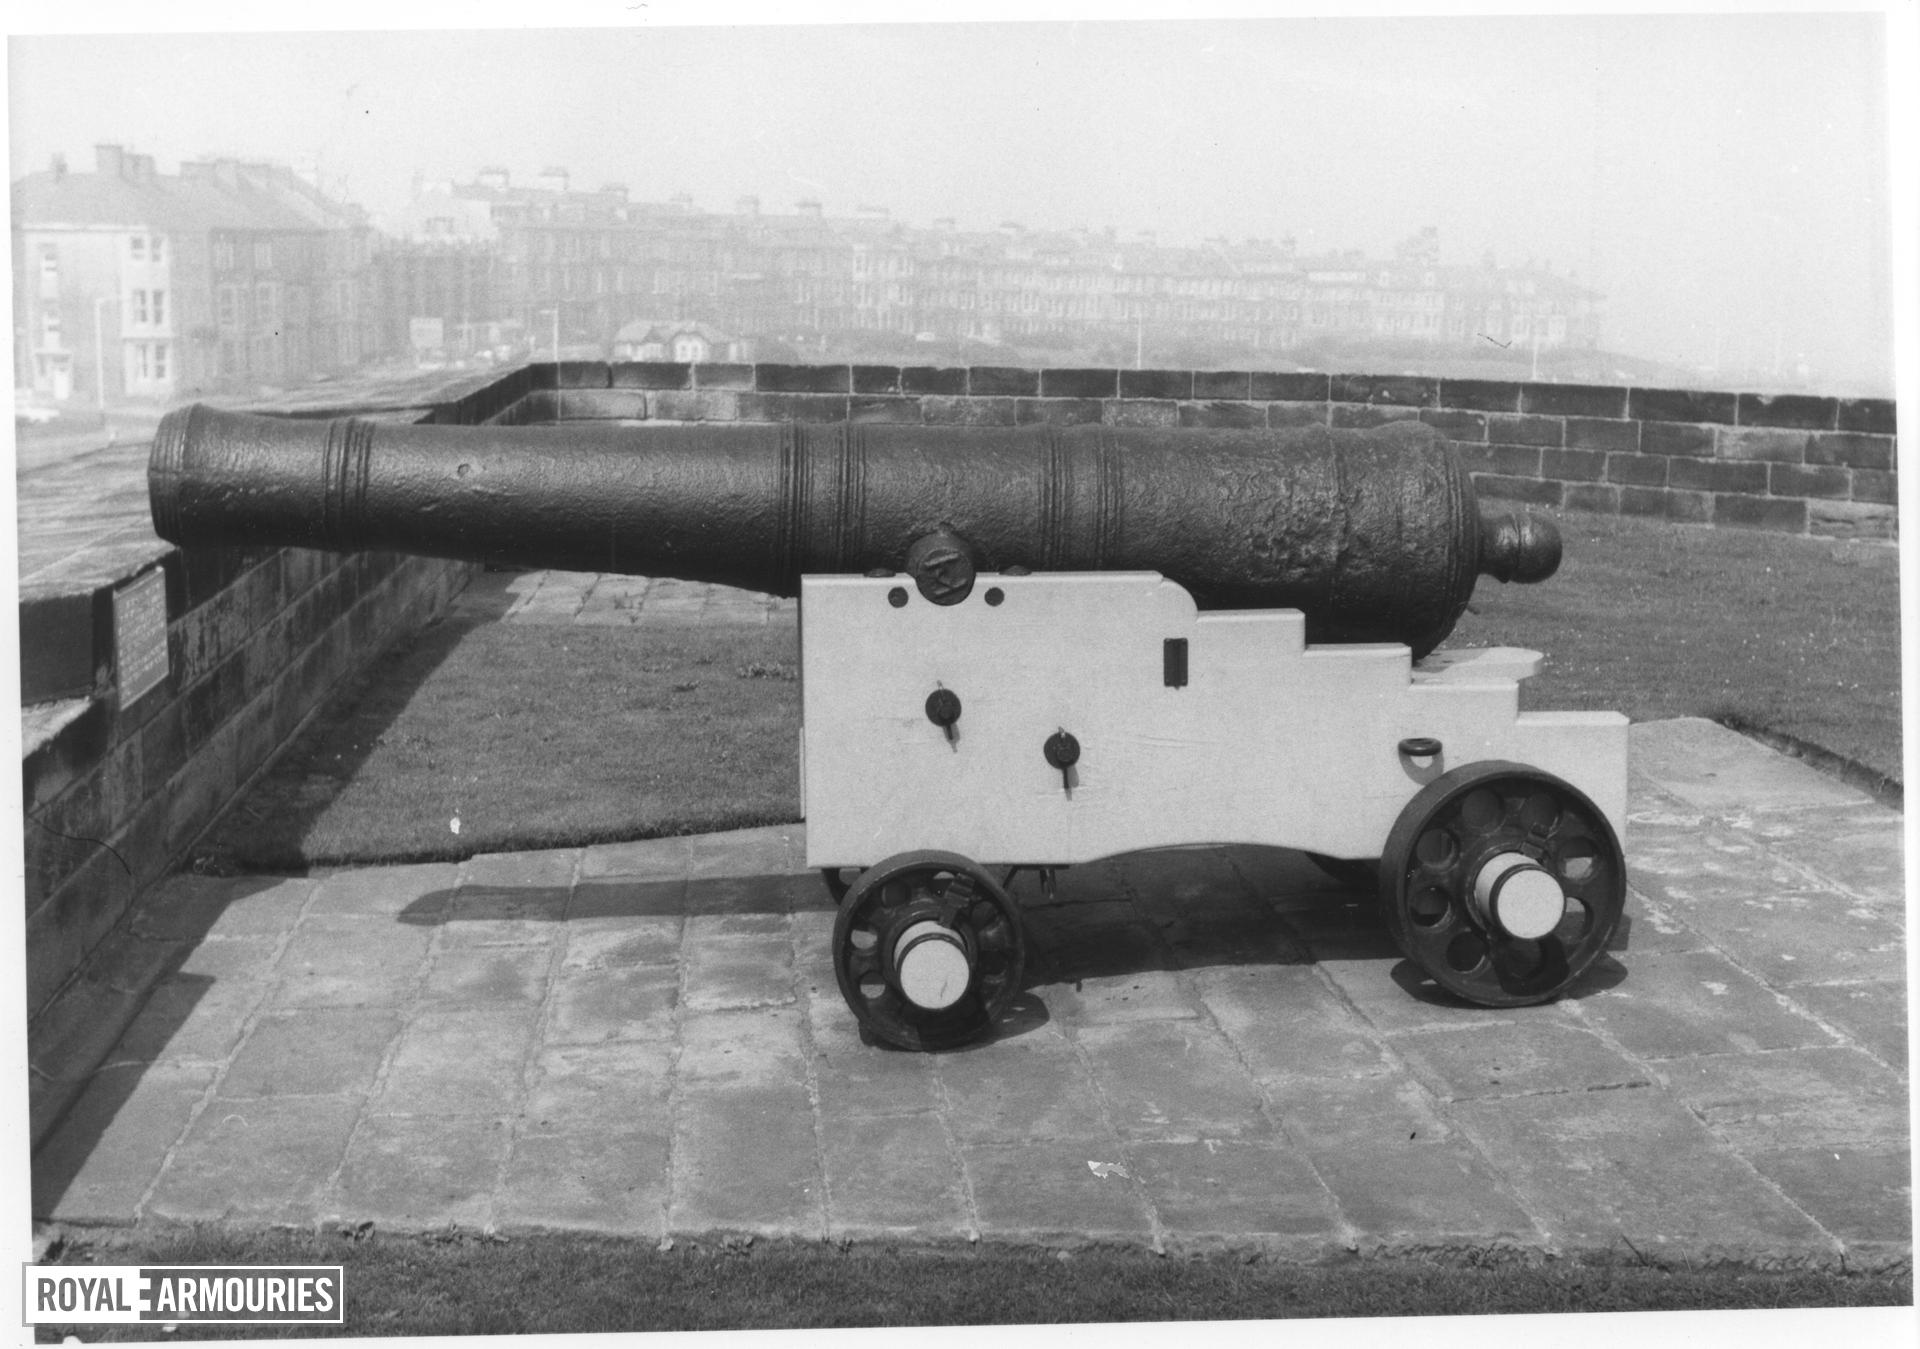 18 pr gun and carriage - Finnbaker Type Made of iron